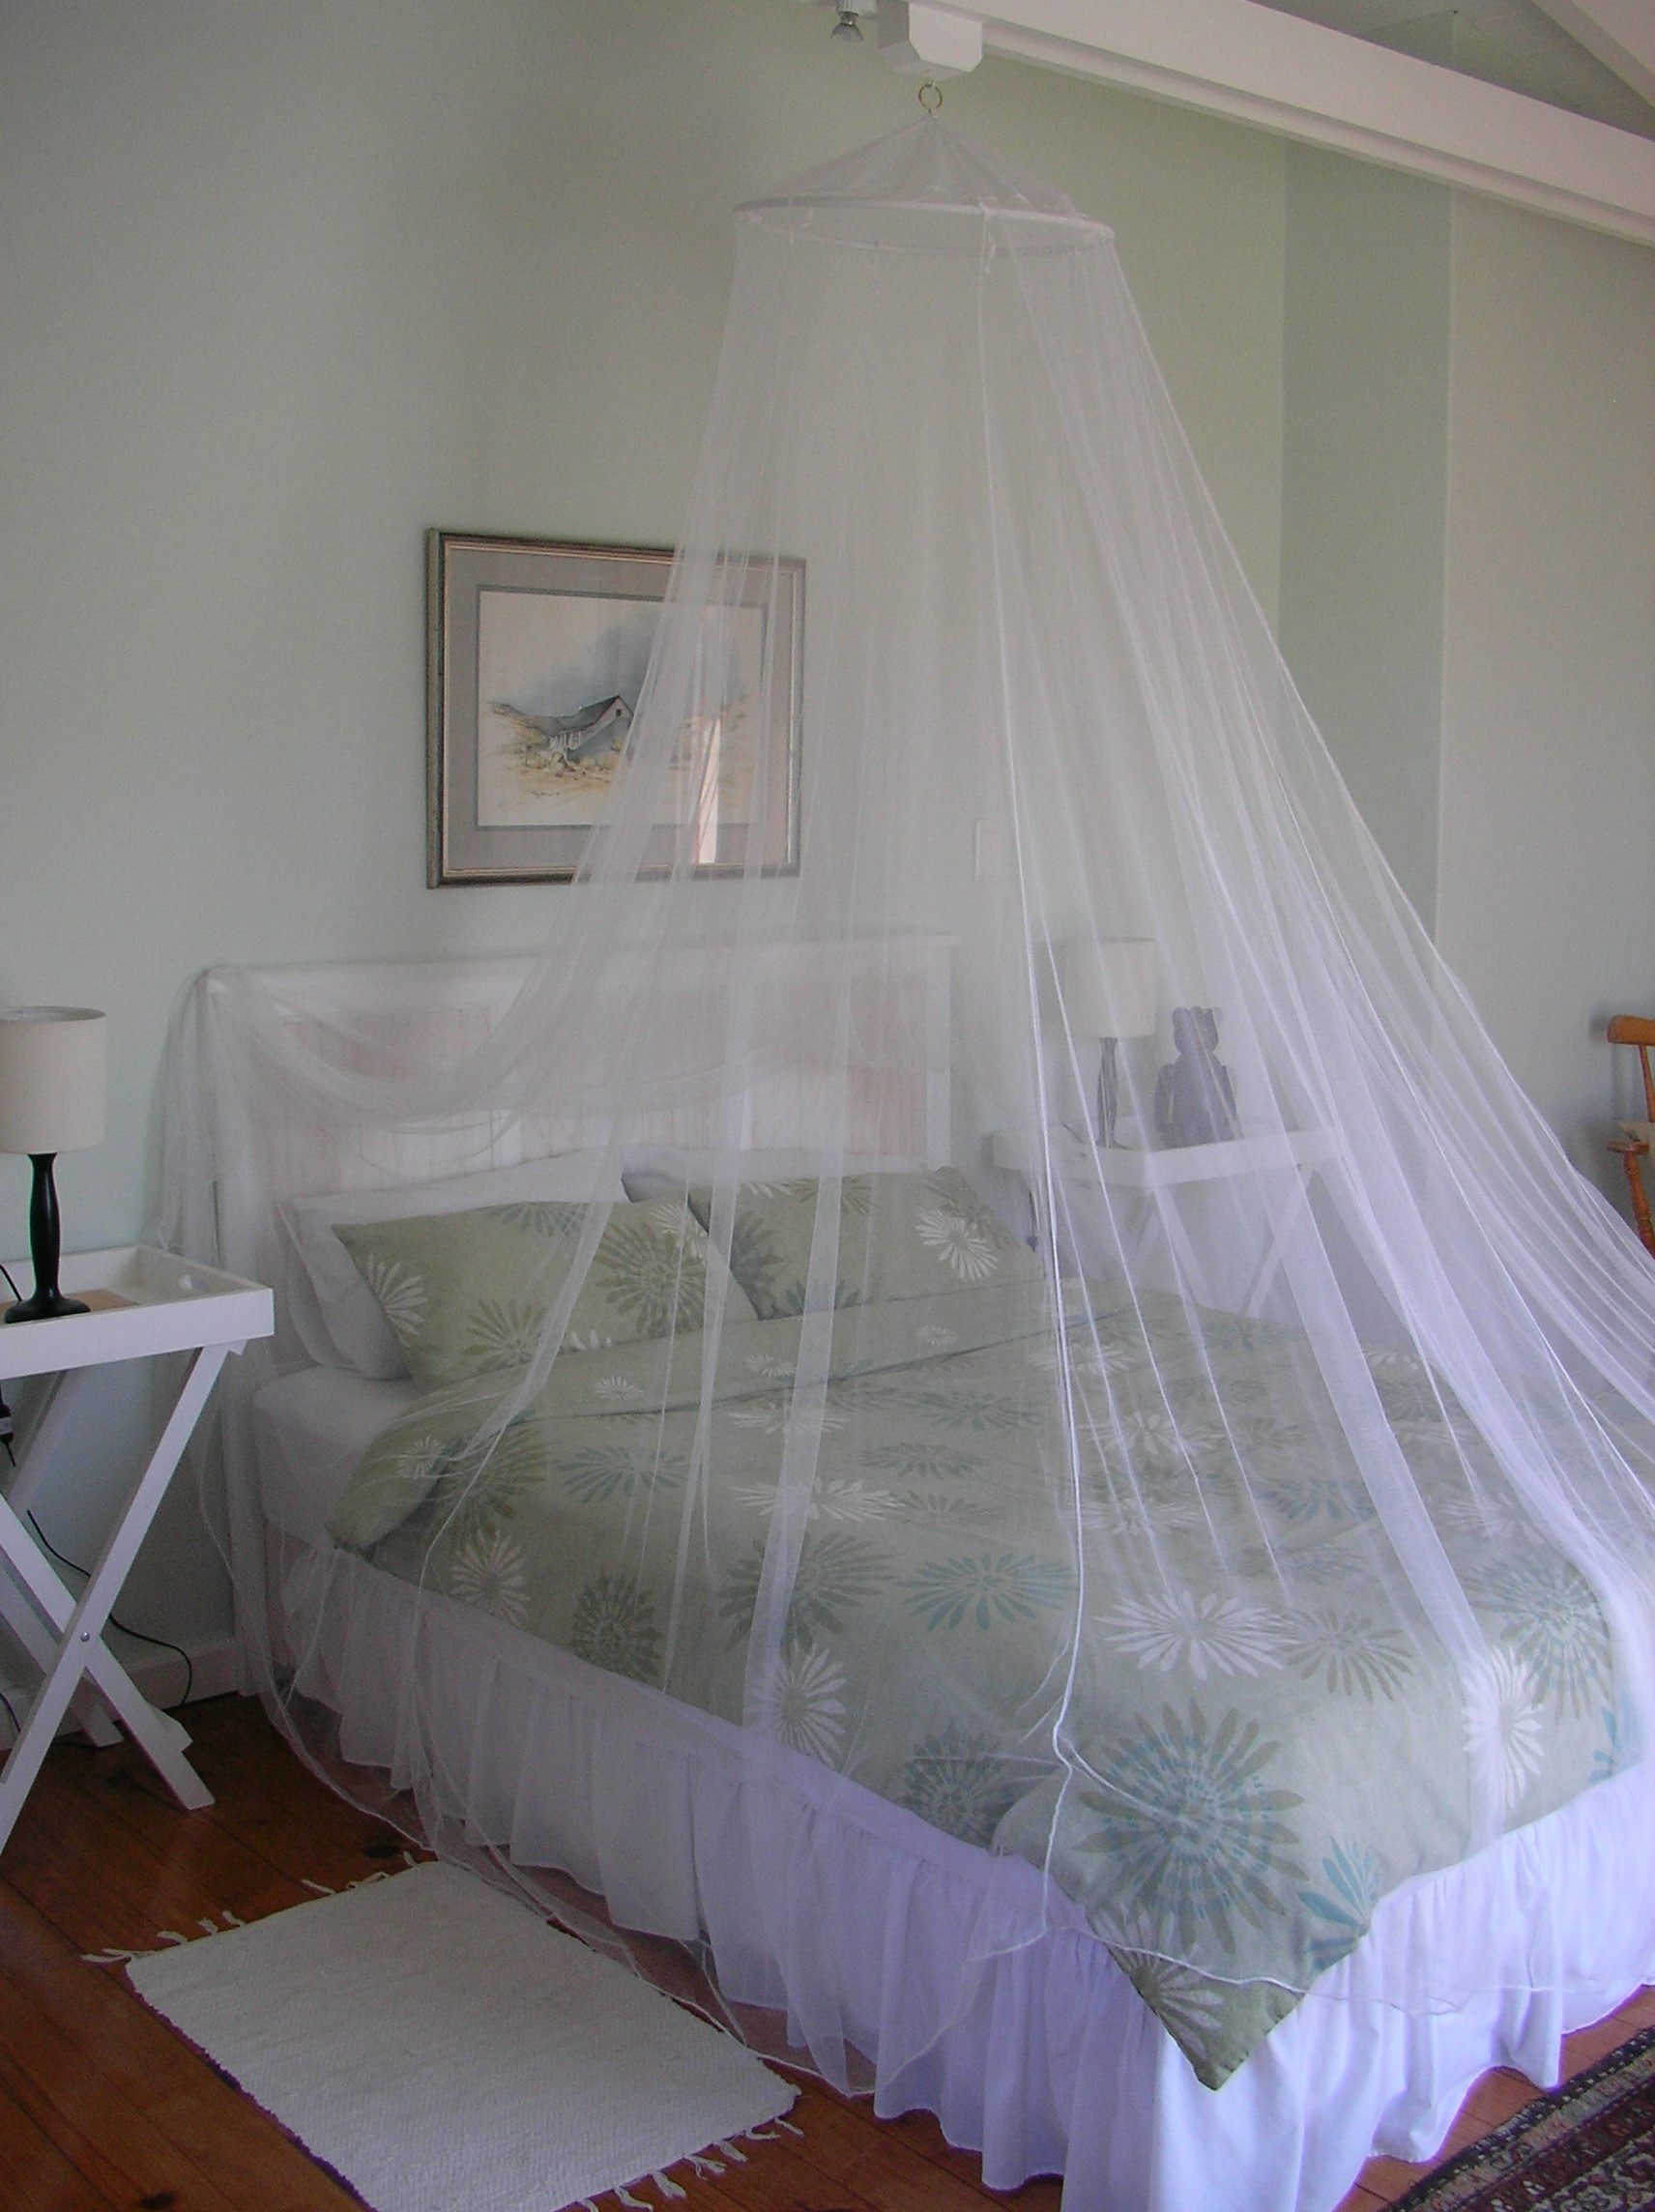 79 dassen island for Bed with mosquito net decoration